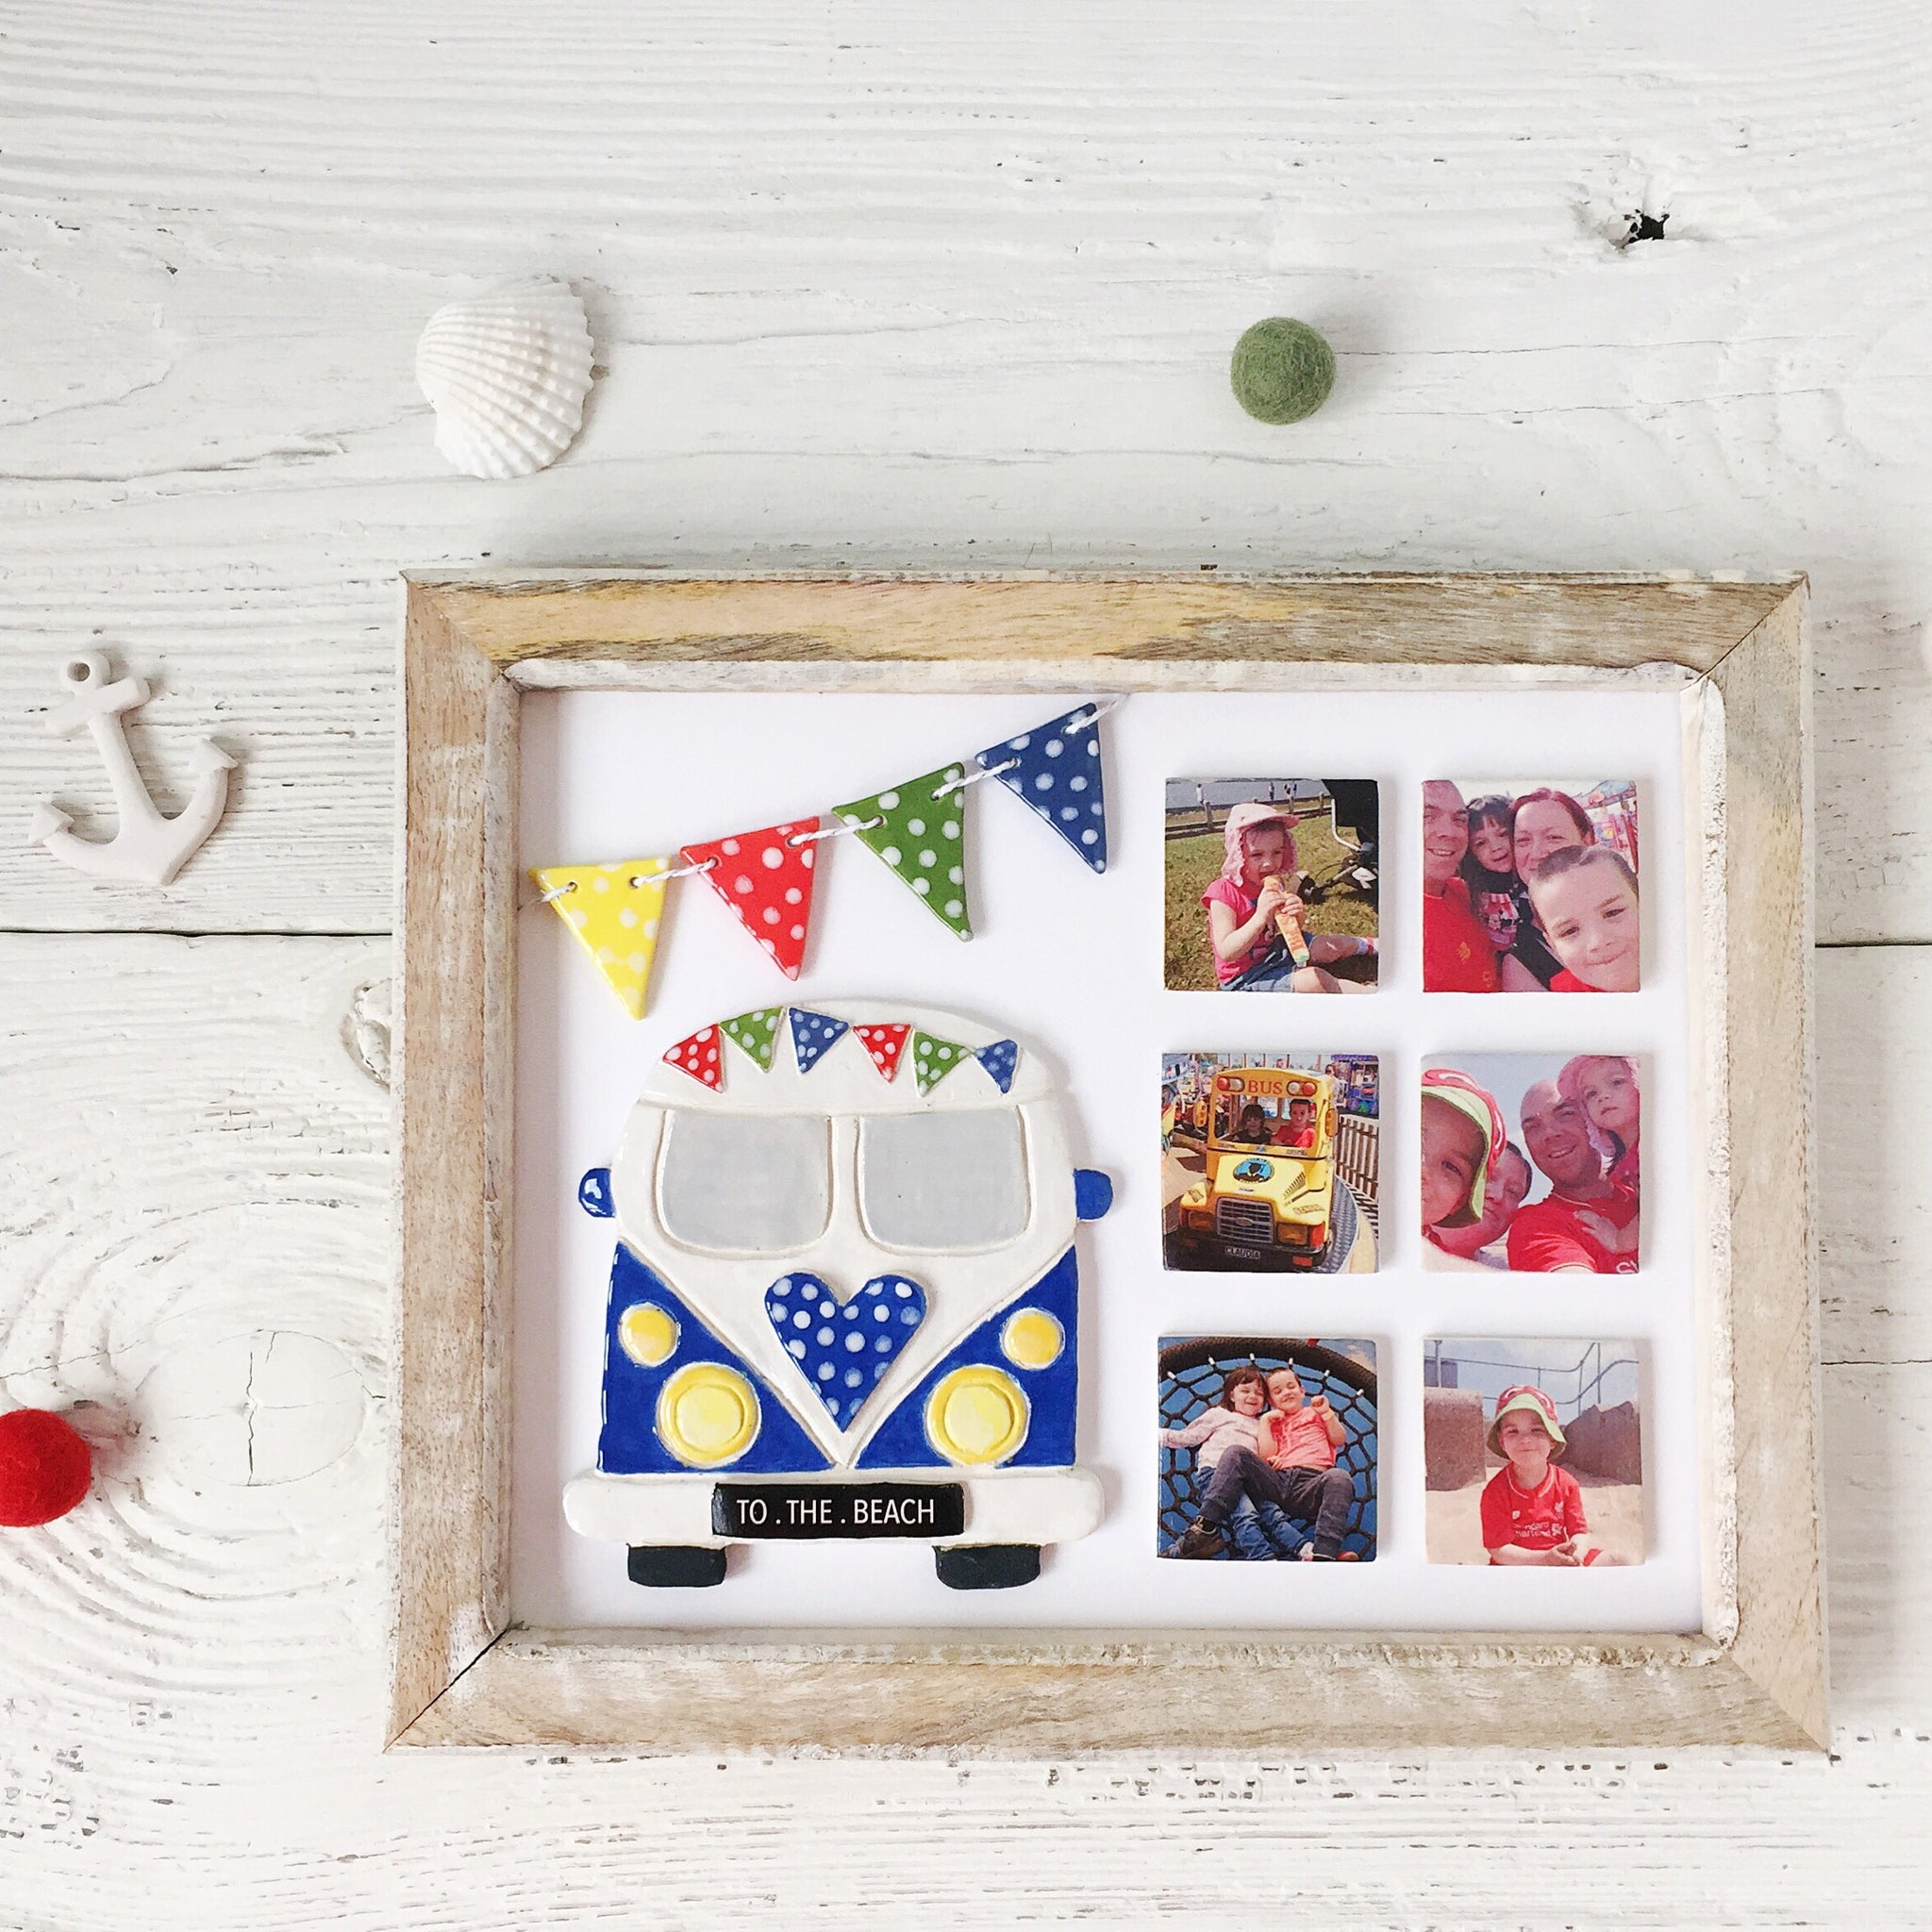 Periwinkle and Clay Campervan Themed Frame - The original